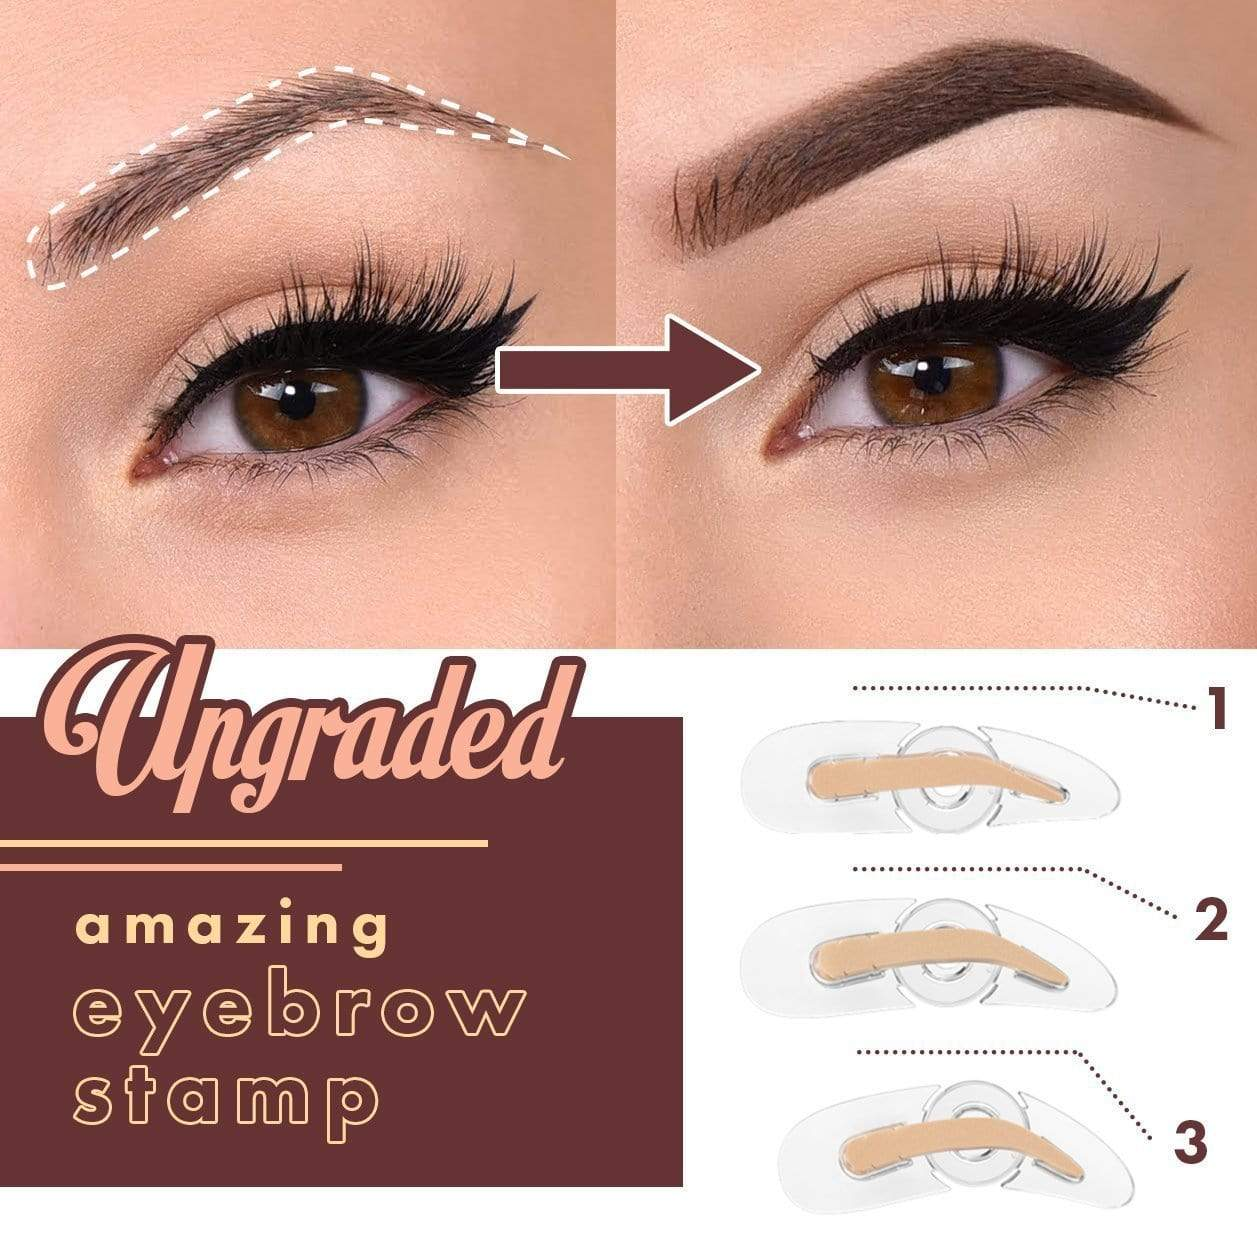 Amazing Adjustable Eyebrow Stamp